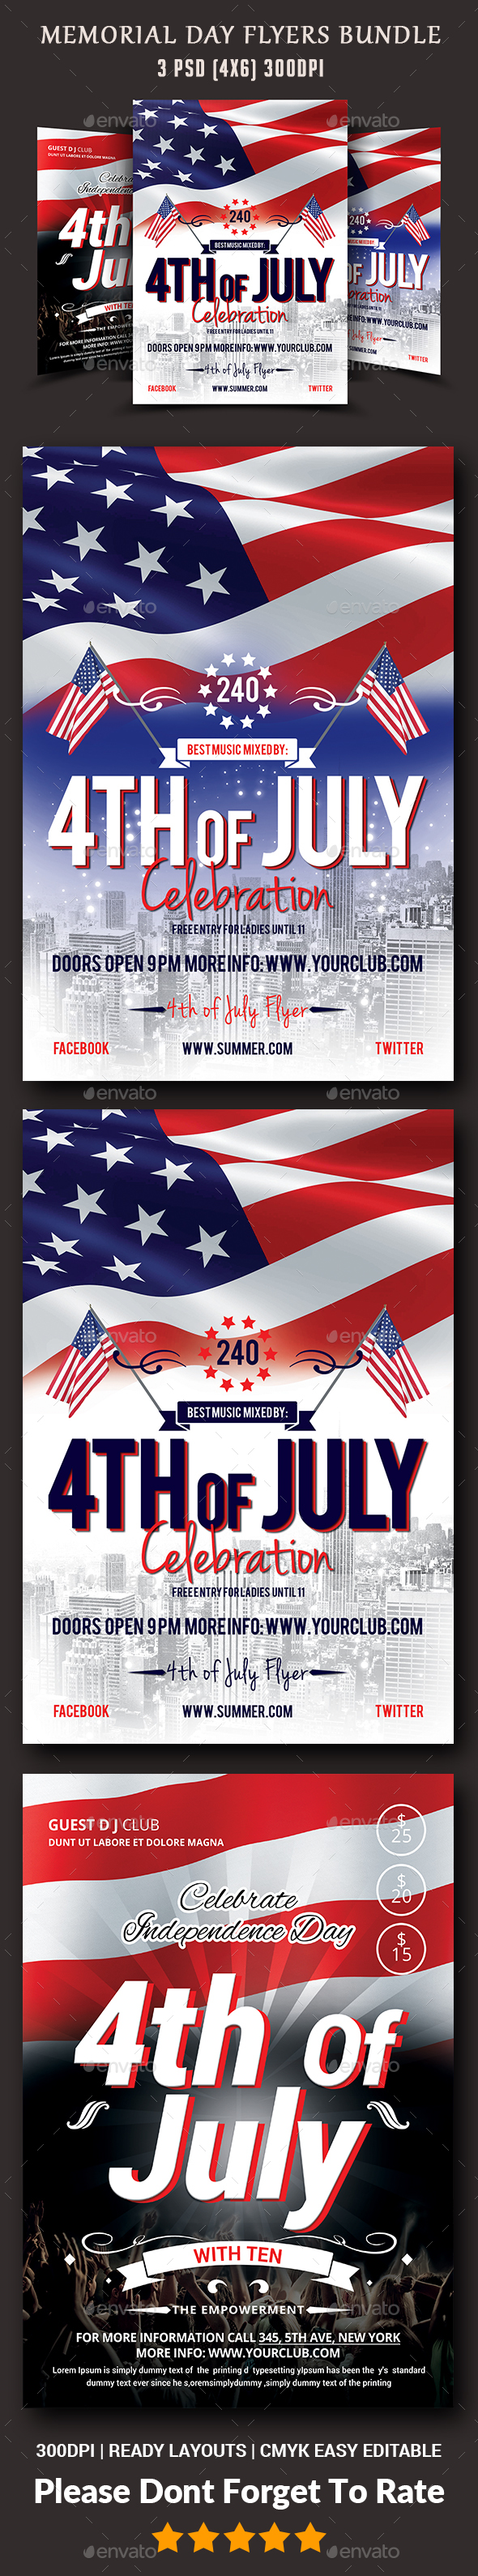 4th of July Flyers Bundle Templates - Events Flyers